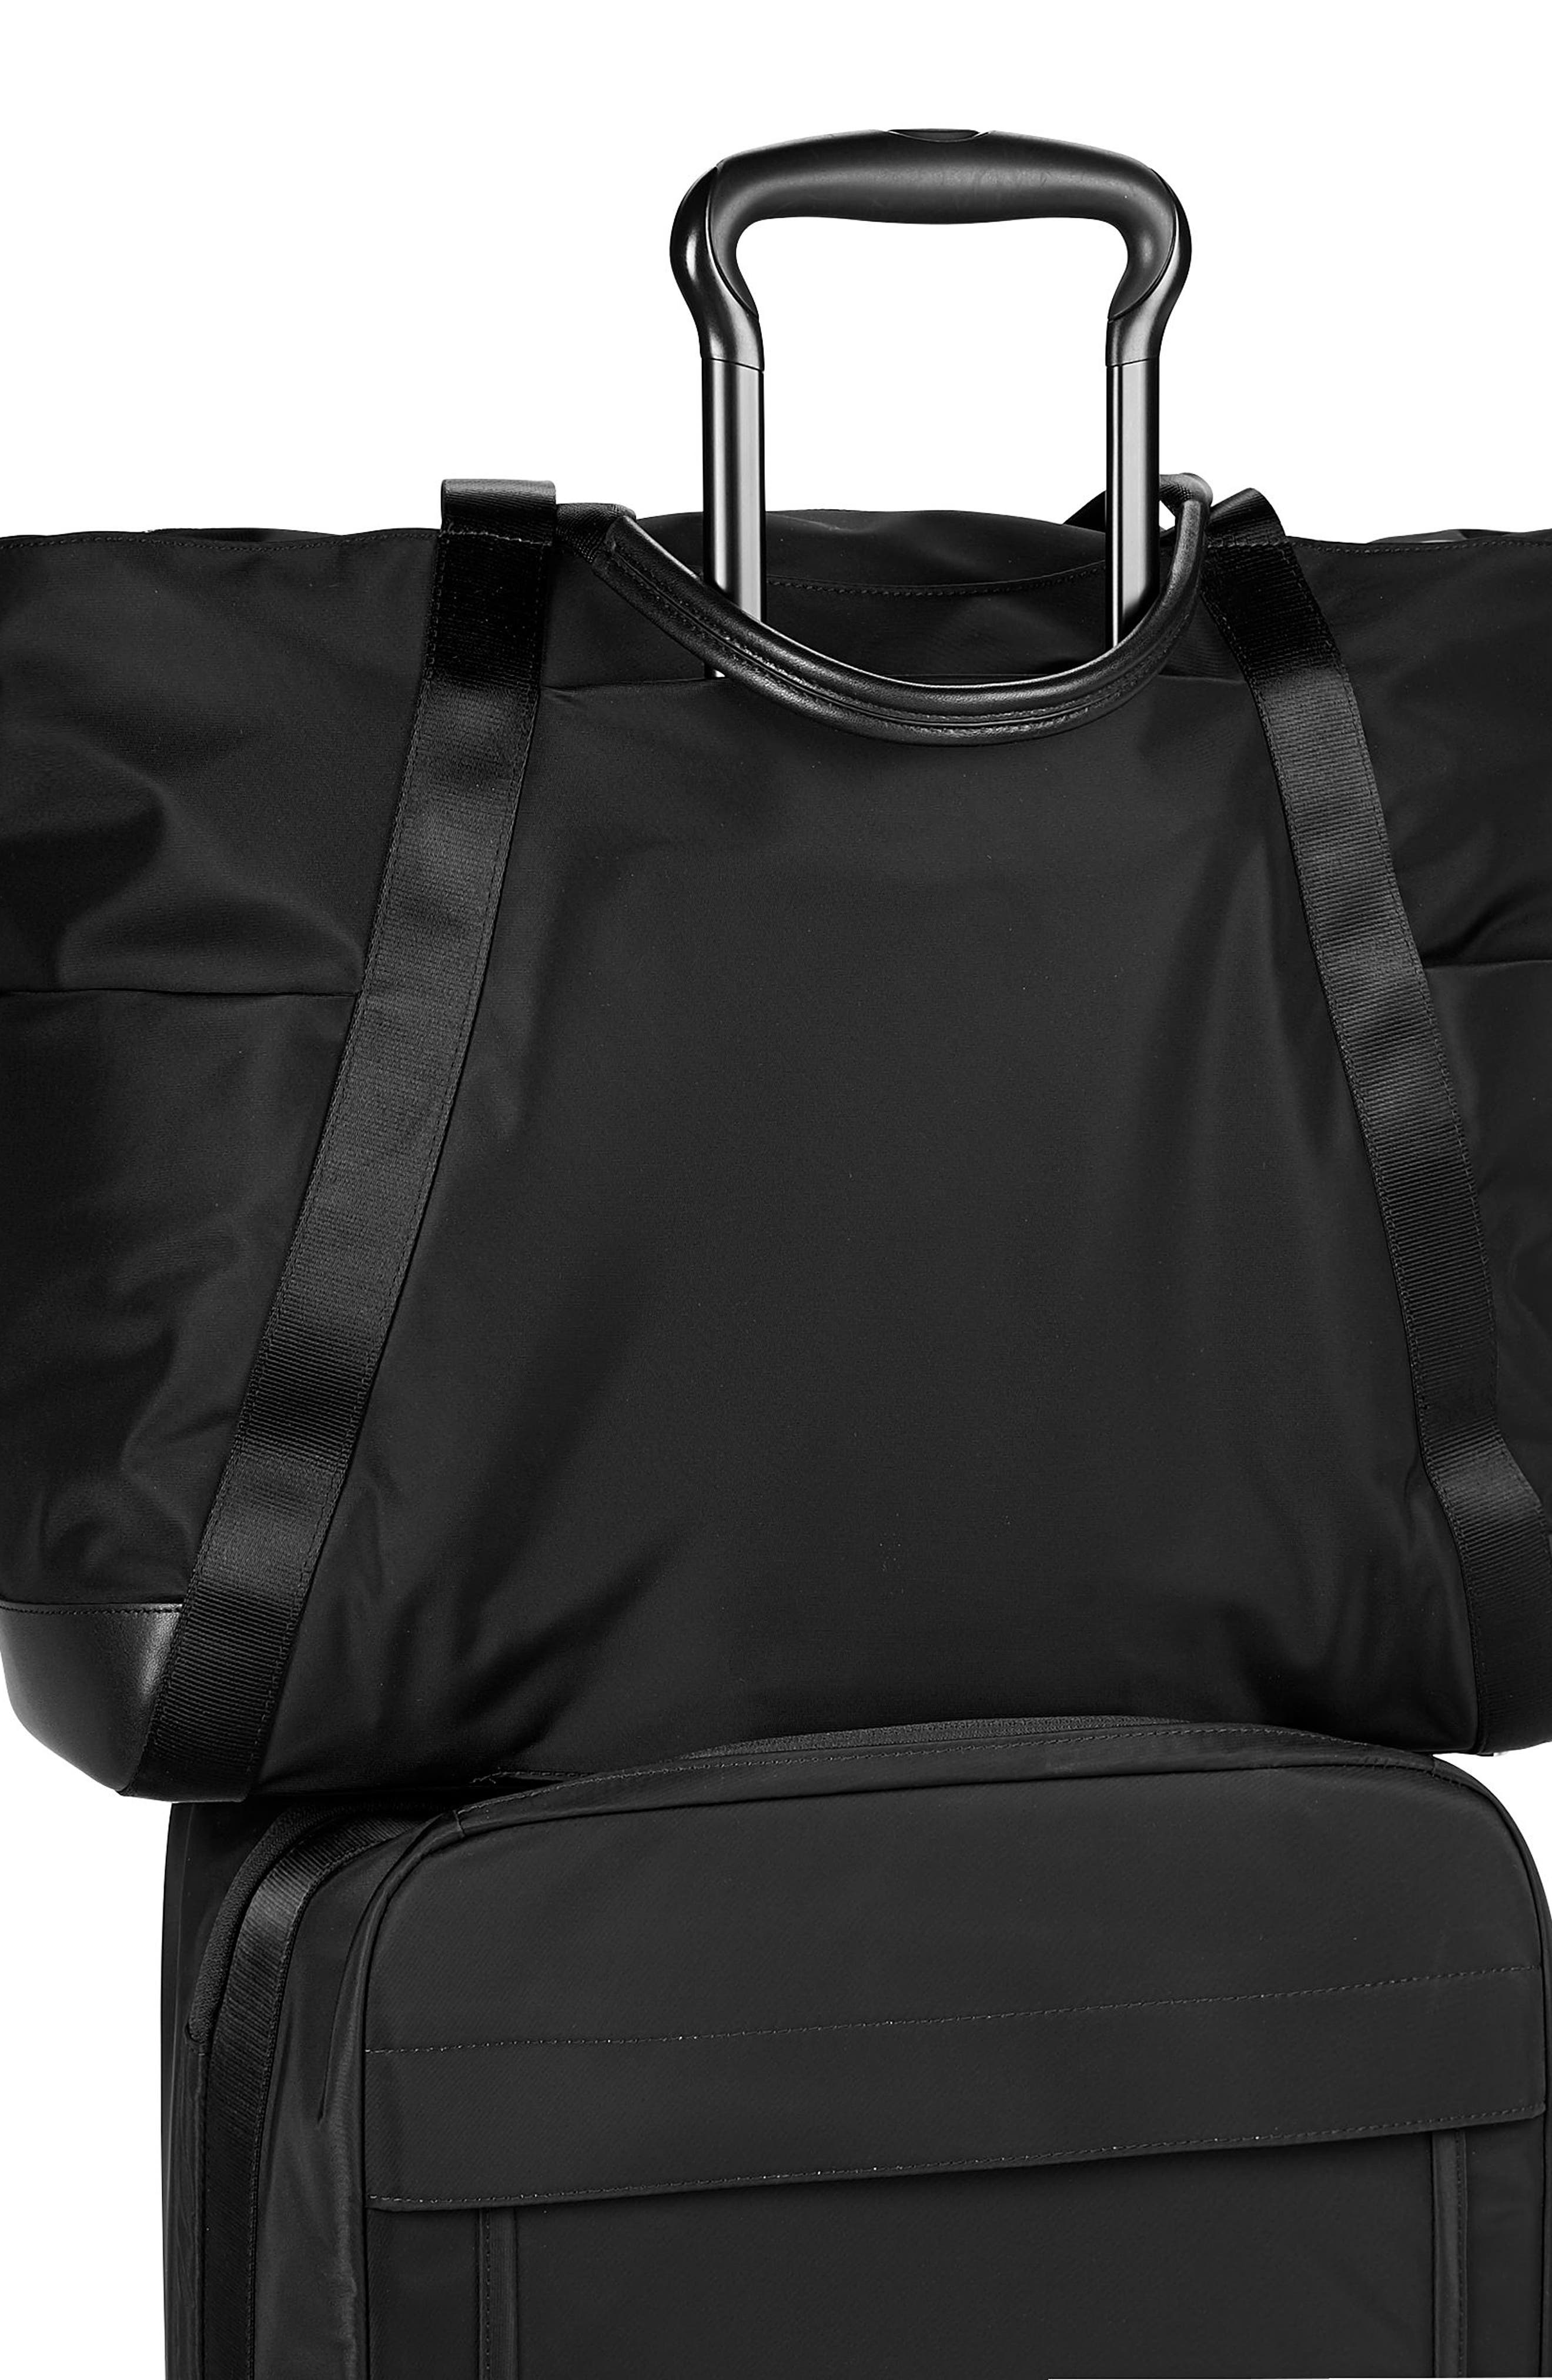 Voyaguer - Madrid Nylon Duffel Bag,                             Alternate thumbnail 5, color,                             BLACK